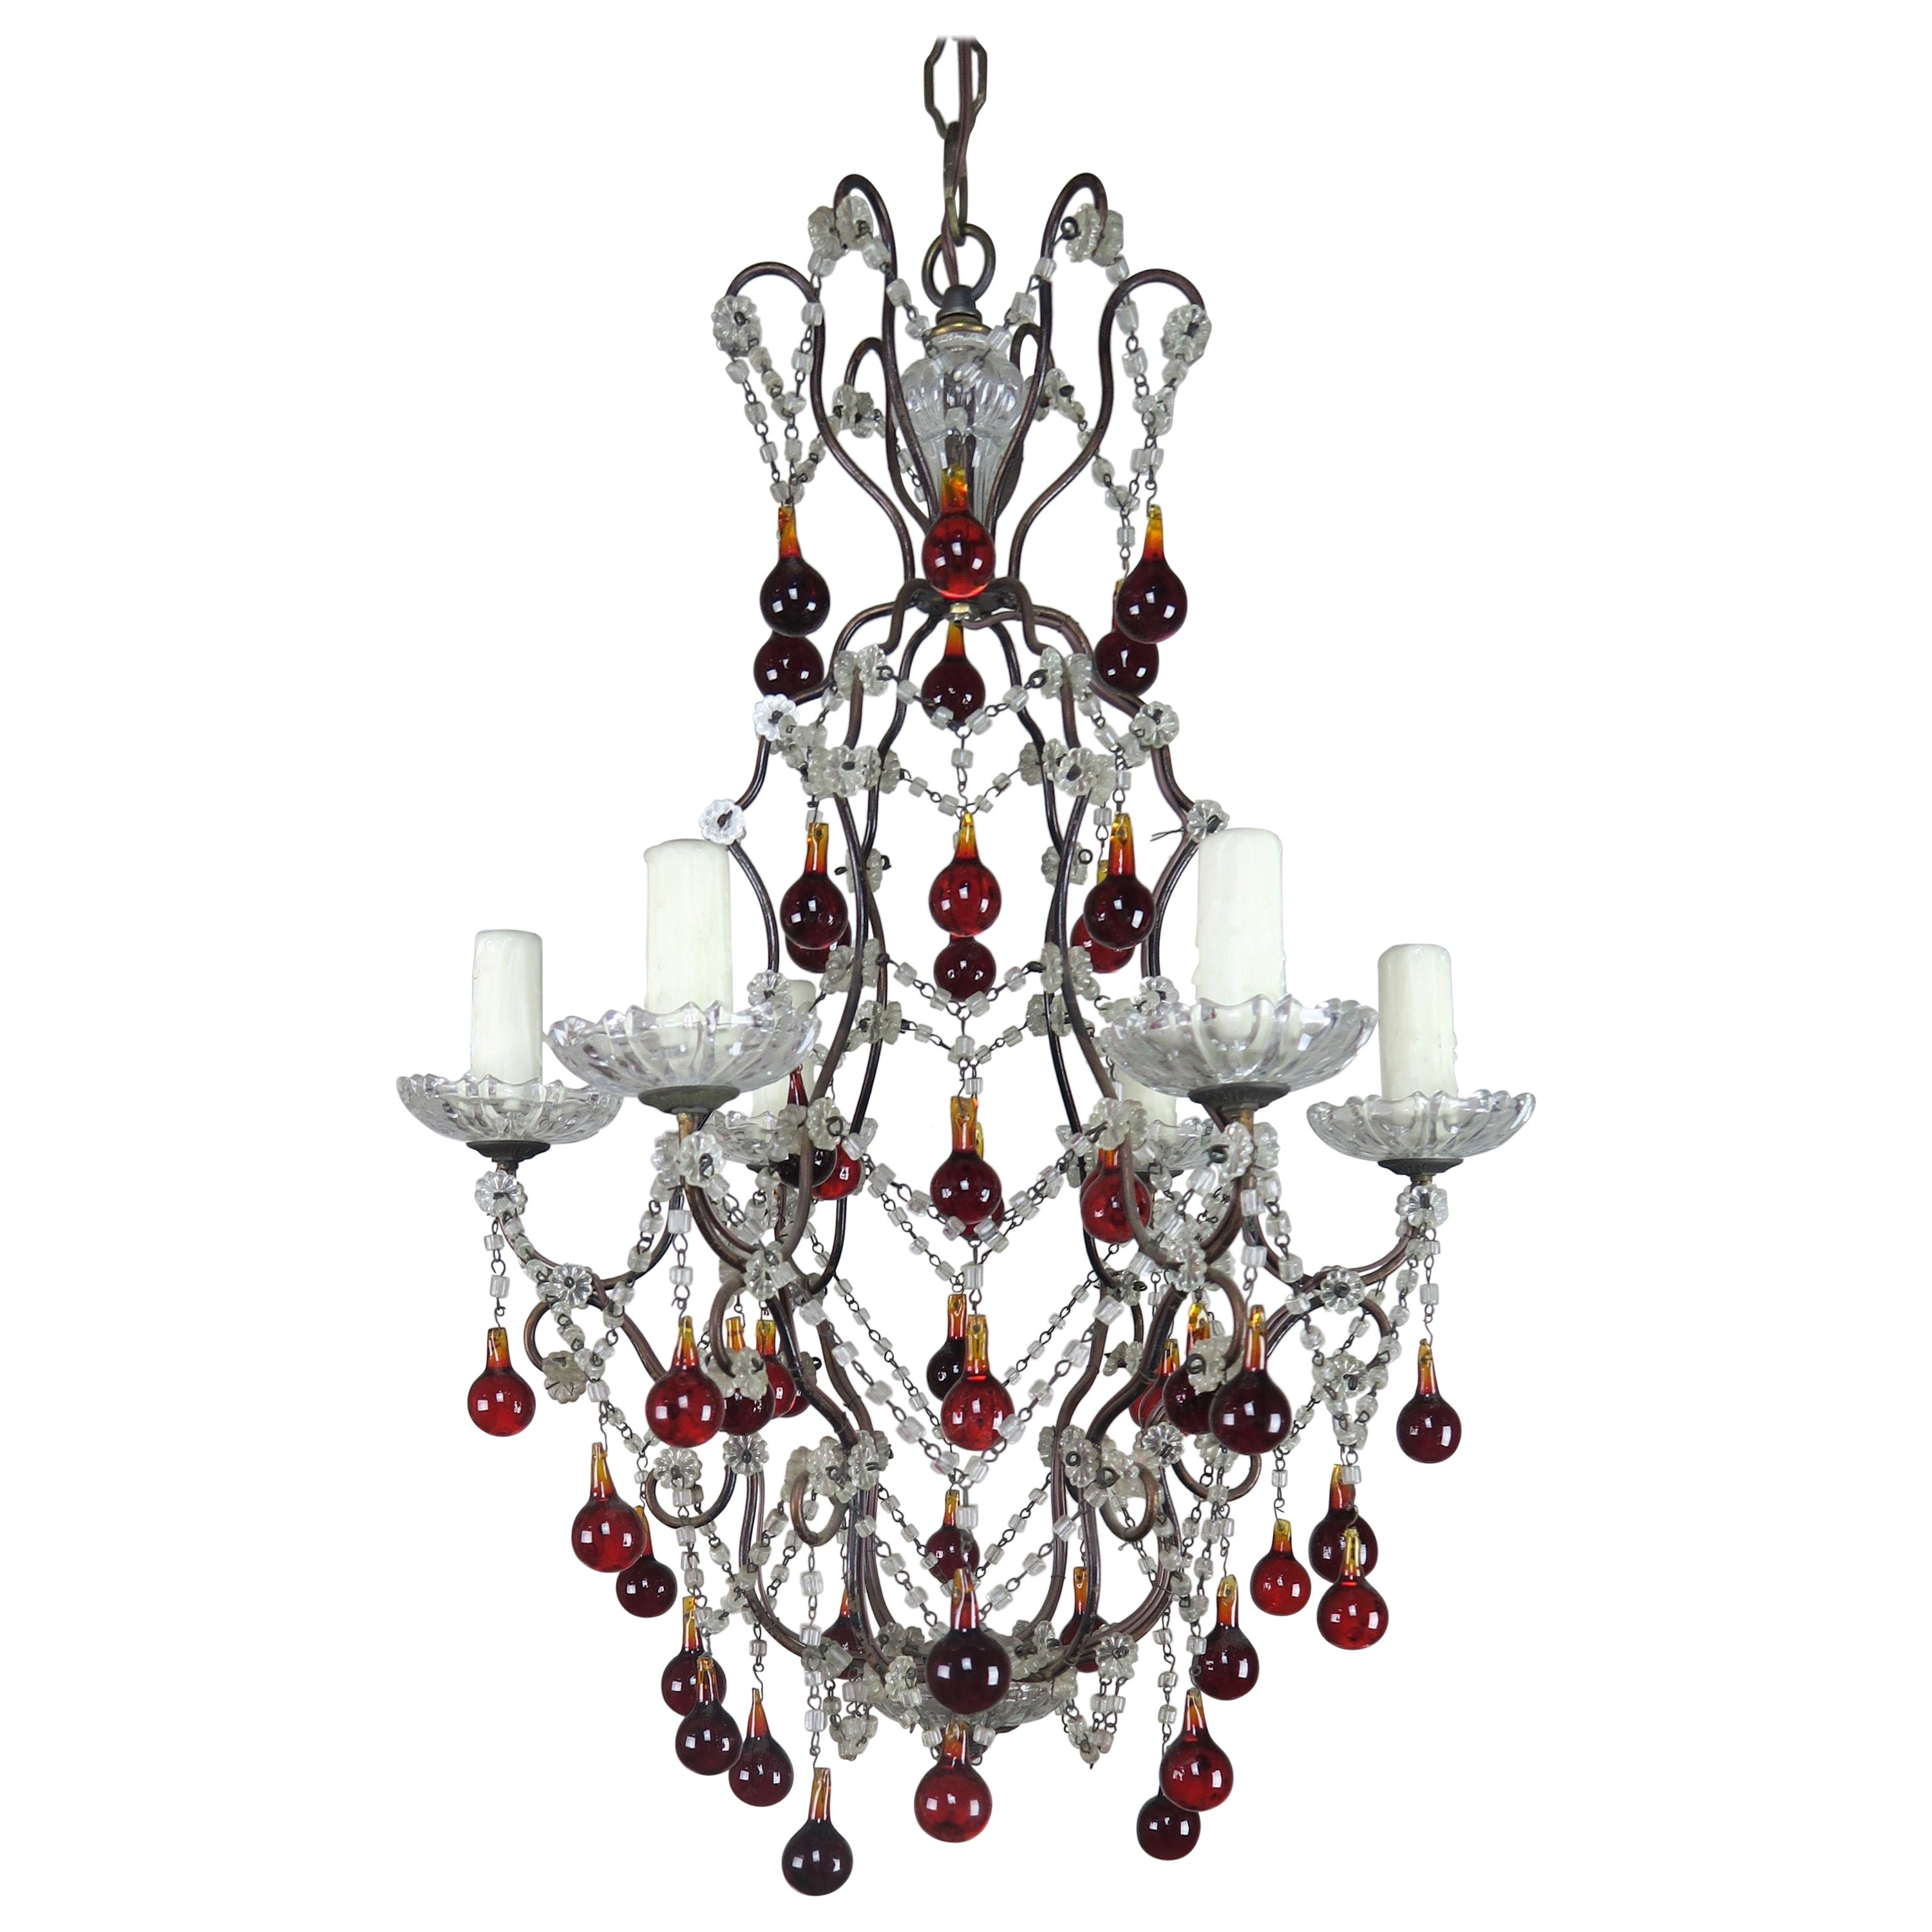 Italian Six-Light Crystal Beaded Chandelier with Vibrant Colored Drops